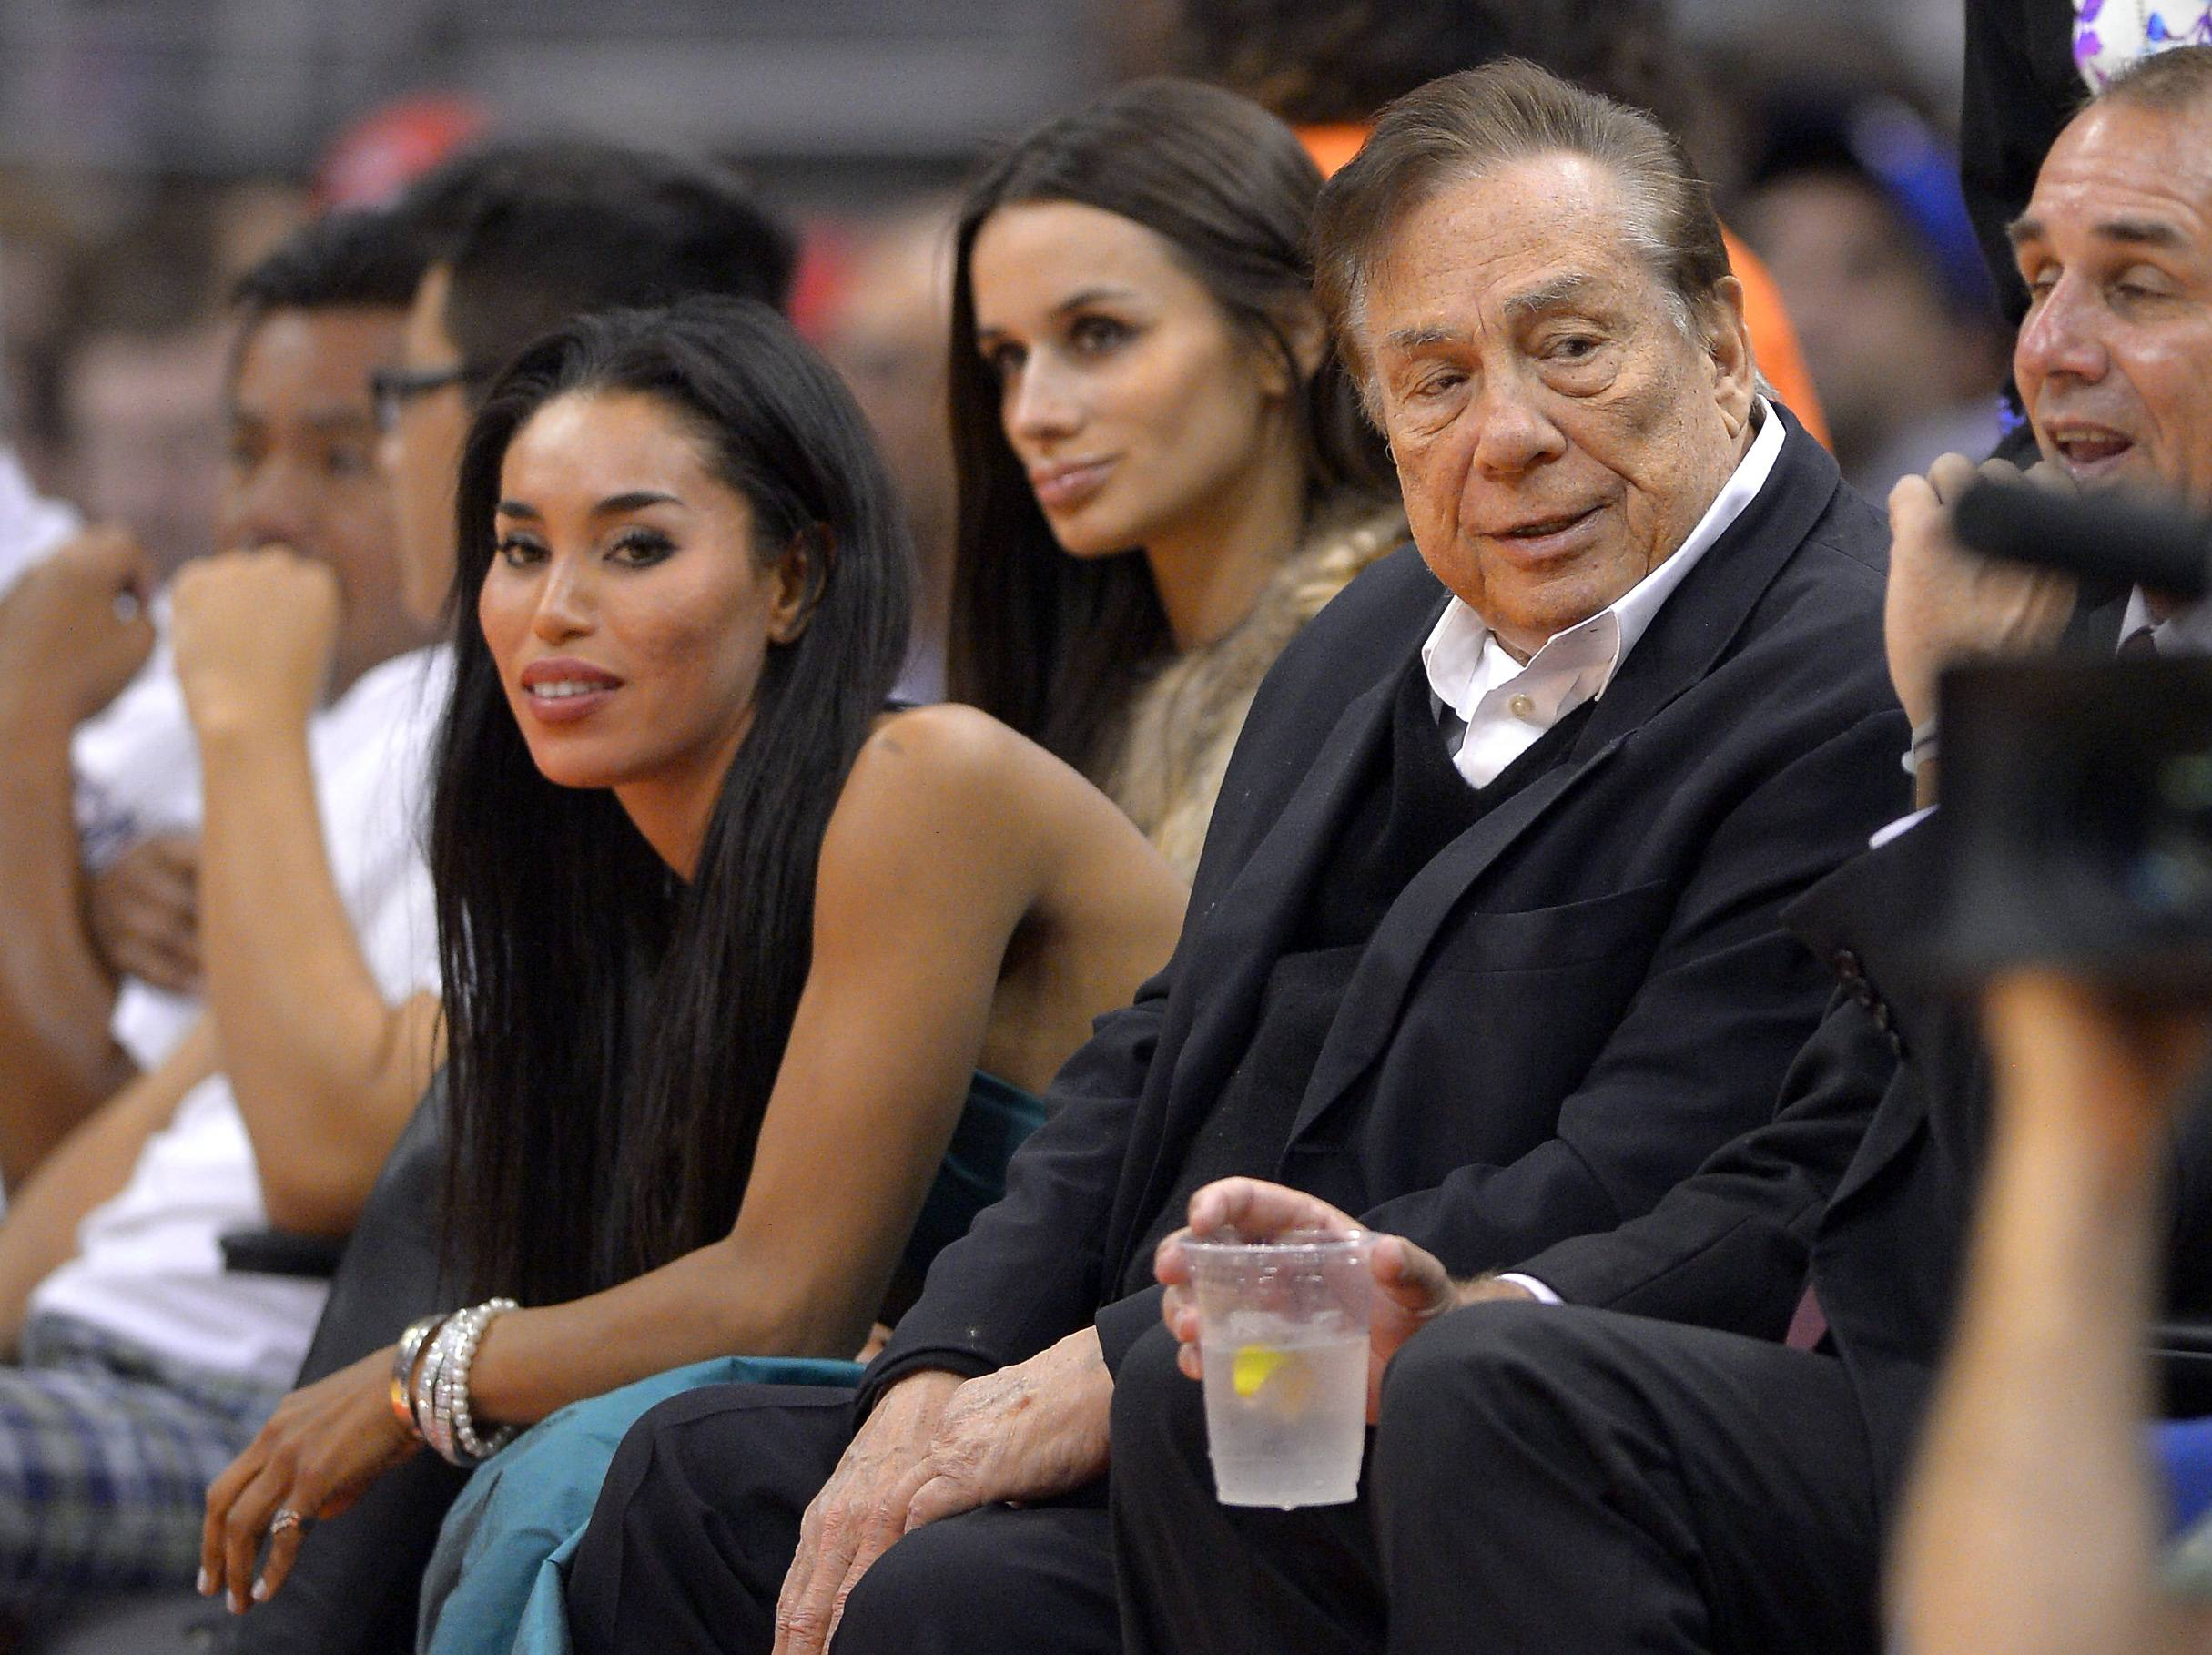 "In this photo taken on Friday, Oct. 25, 2013, Los Angeles Clippers owner Donald Sterling, right, and V. Stiviano, left, watch the Clippers play the Sacramento Kings during the first half of an NBA basketball game in Los Angeles. The NBA is investigating a report of an audio recording in which a man purported to be Sterling makes racist remarks while speaking to Stiviano. NBA spokesman Mike Bass said in a statement Saturday, April 26, 2014, that the league is in the process of authenticating the validity of the recording posted on TMZ's website. Bass called the comments ""disturbing and offensive."" (AP Photo/Mark J. Terrill)"